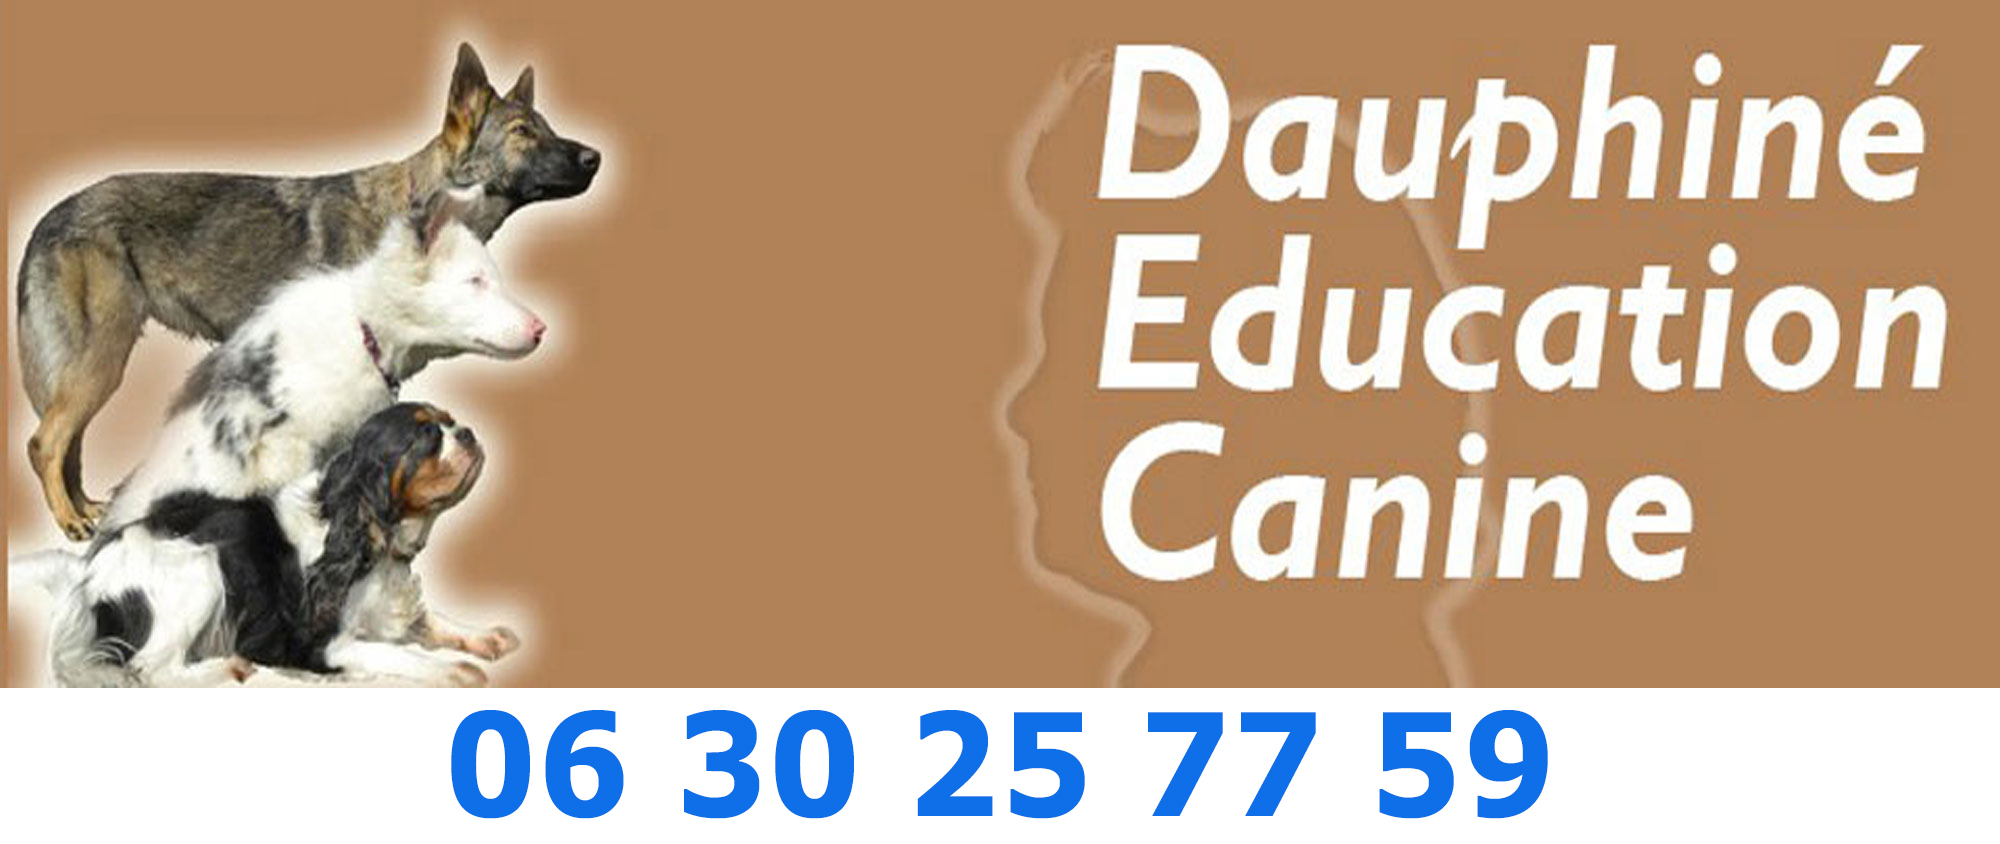 educationcanine38.com